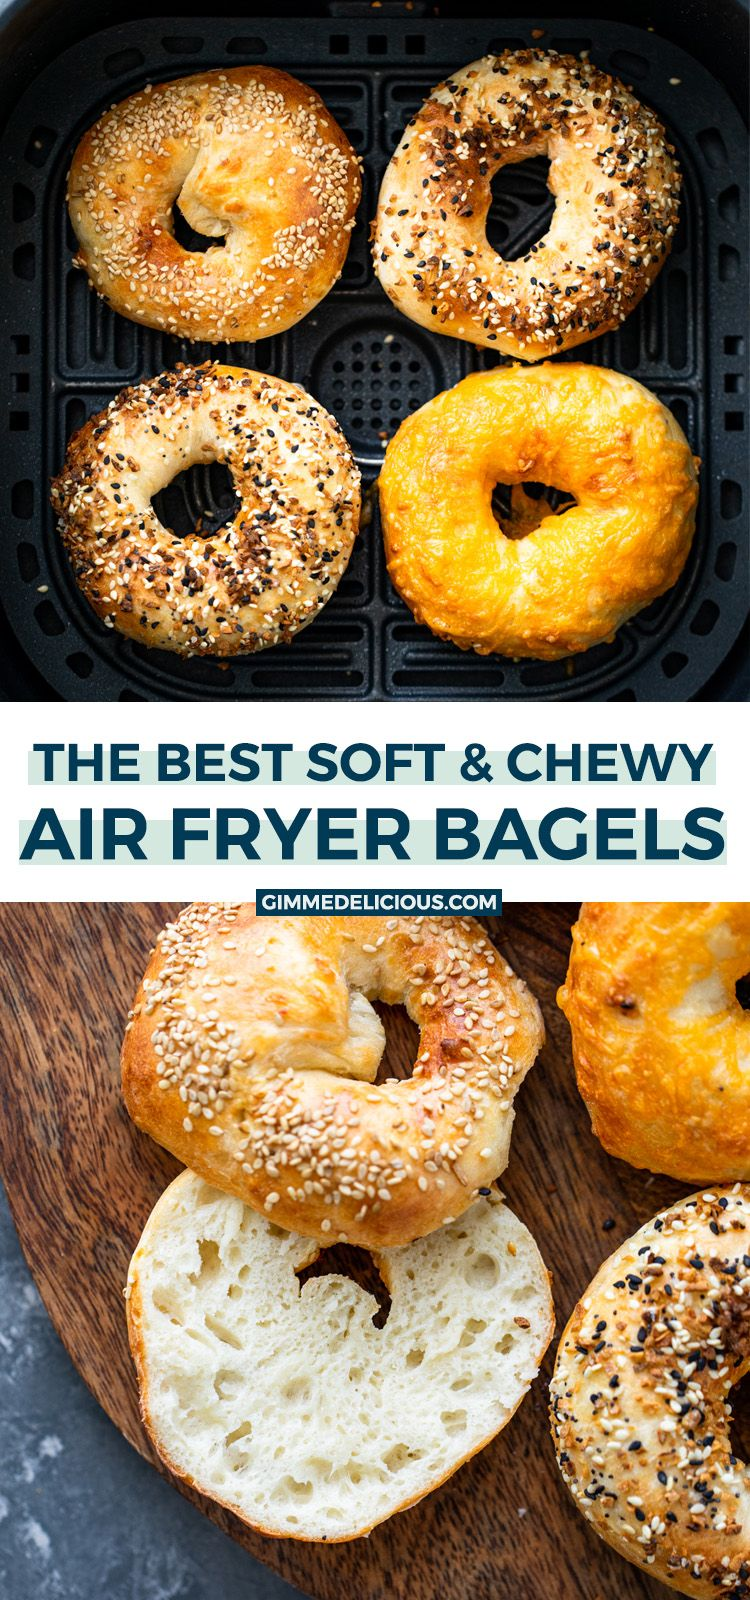 These 15 Minute Air Fryer Bagels are insanely delicious